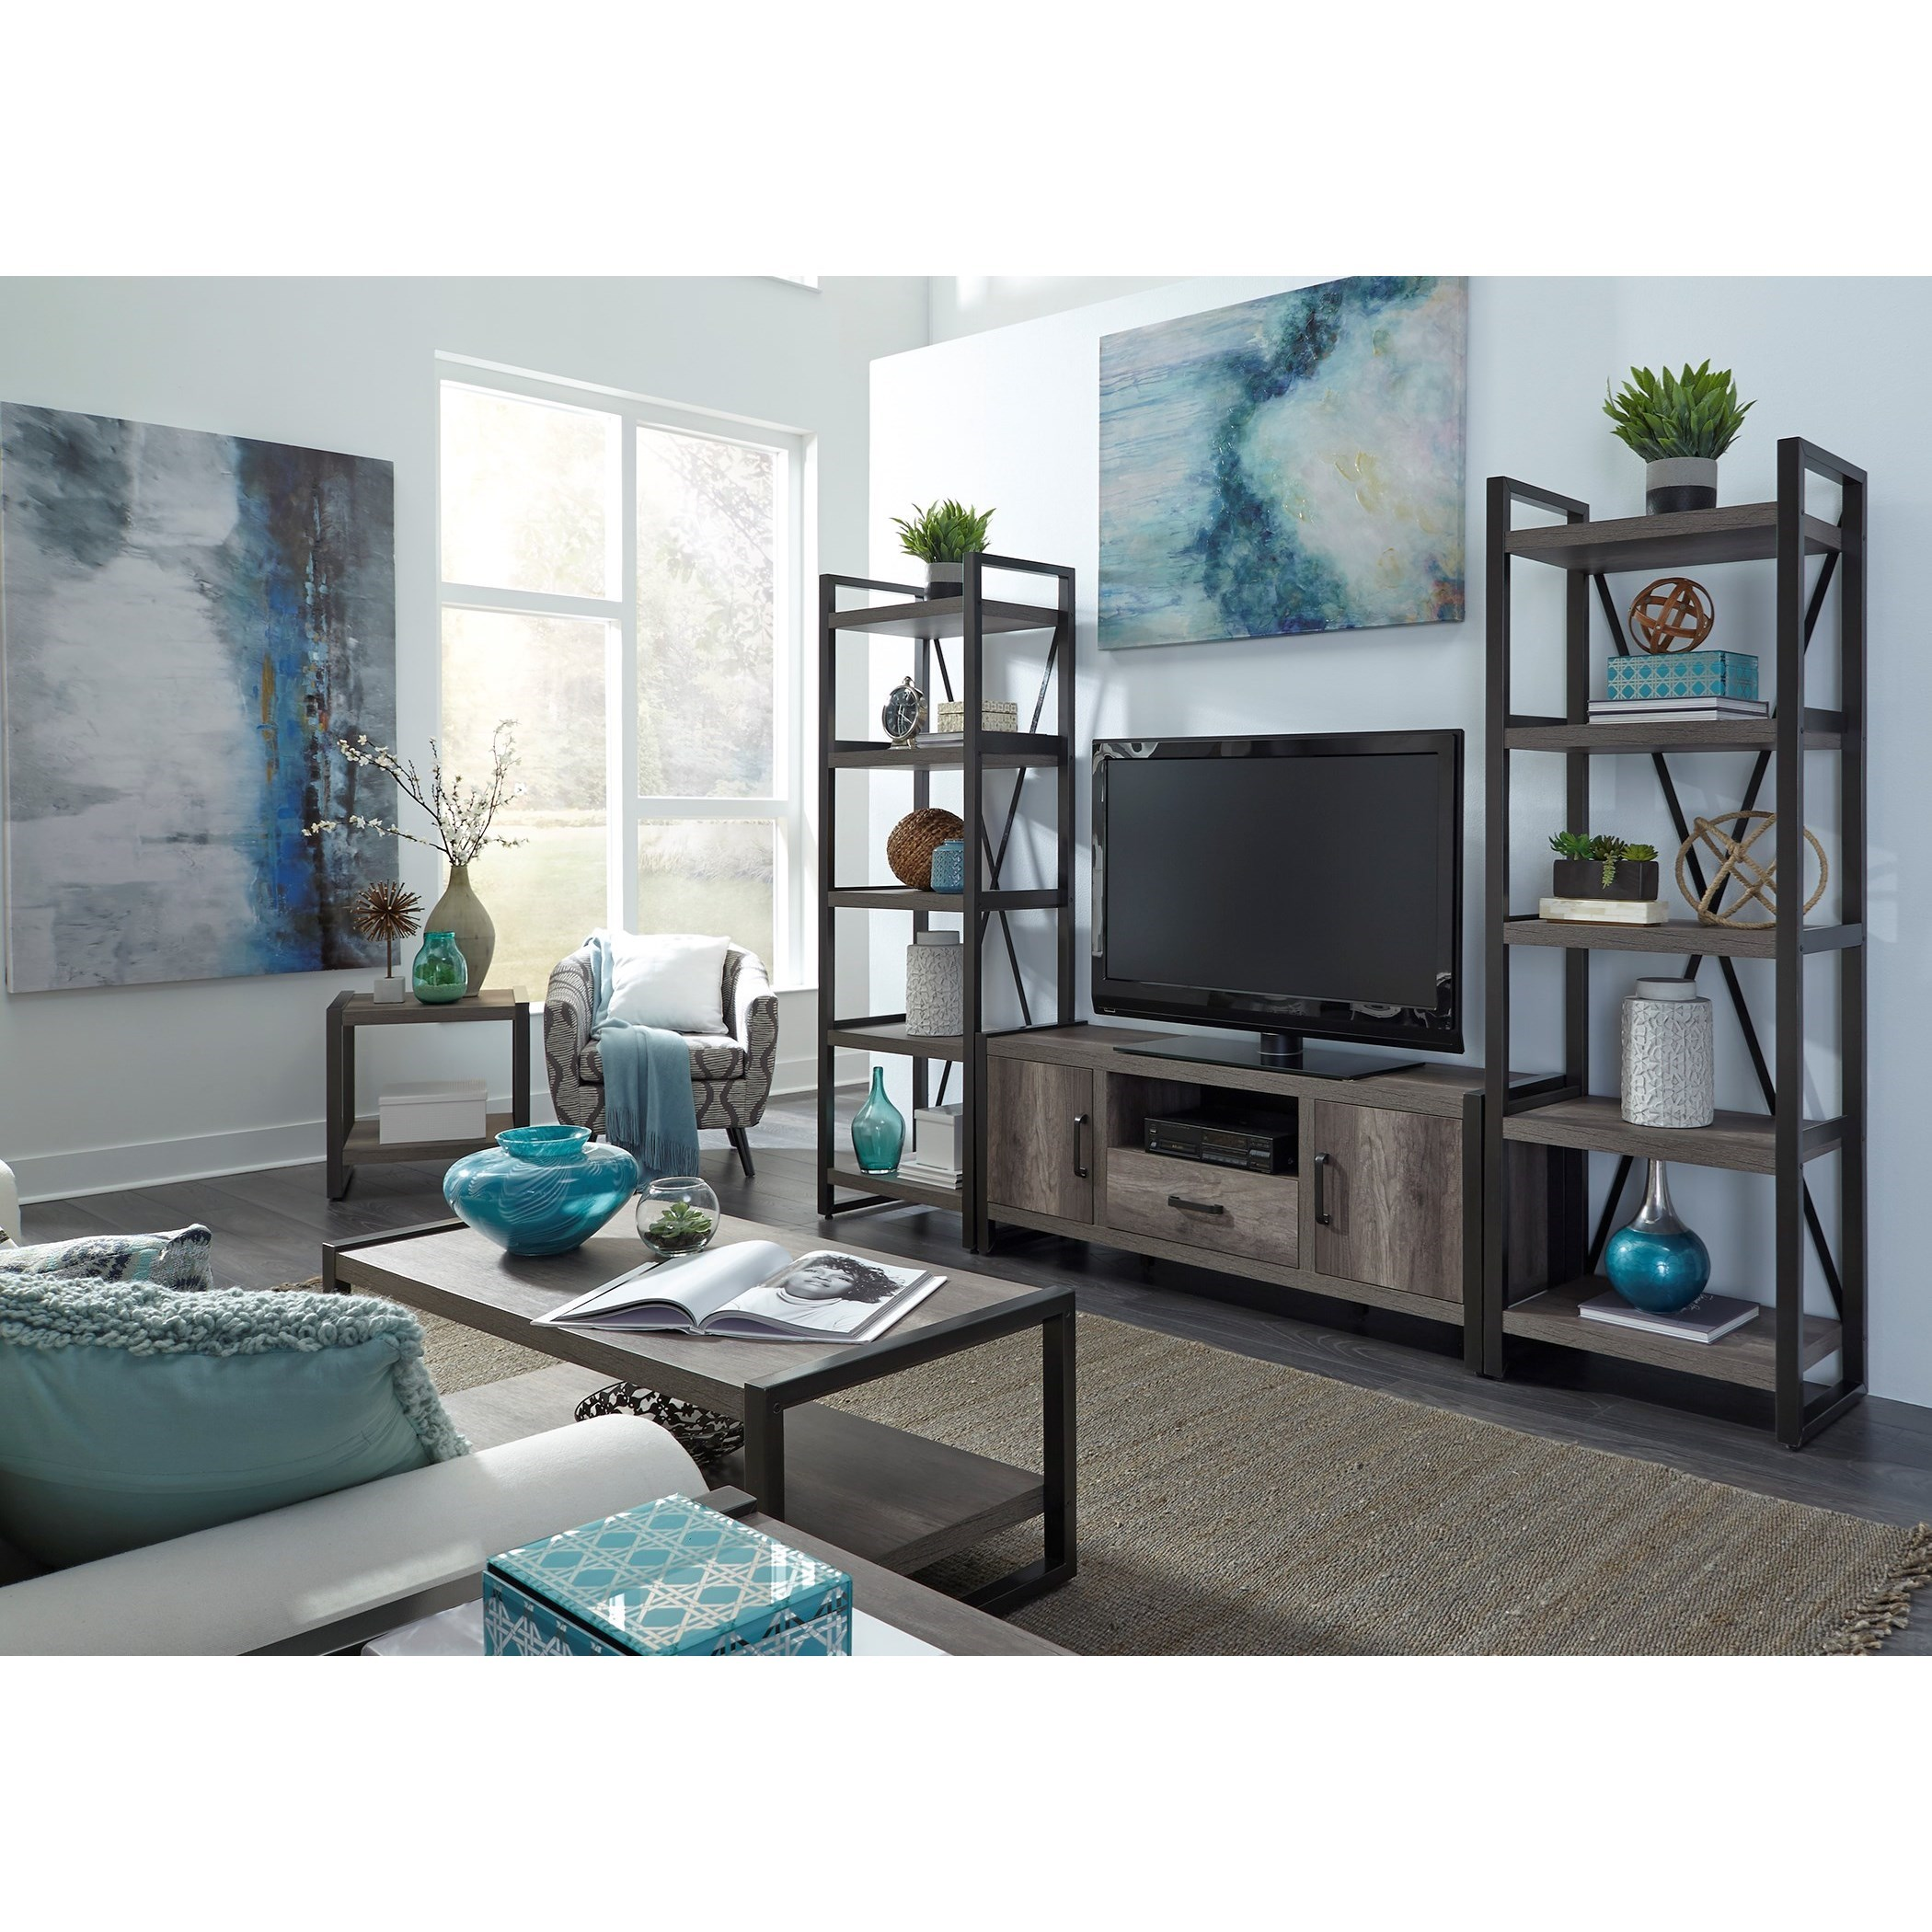 Contemporary Entertainment Center with Tall Piers